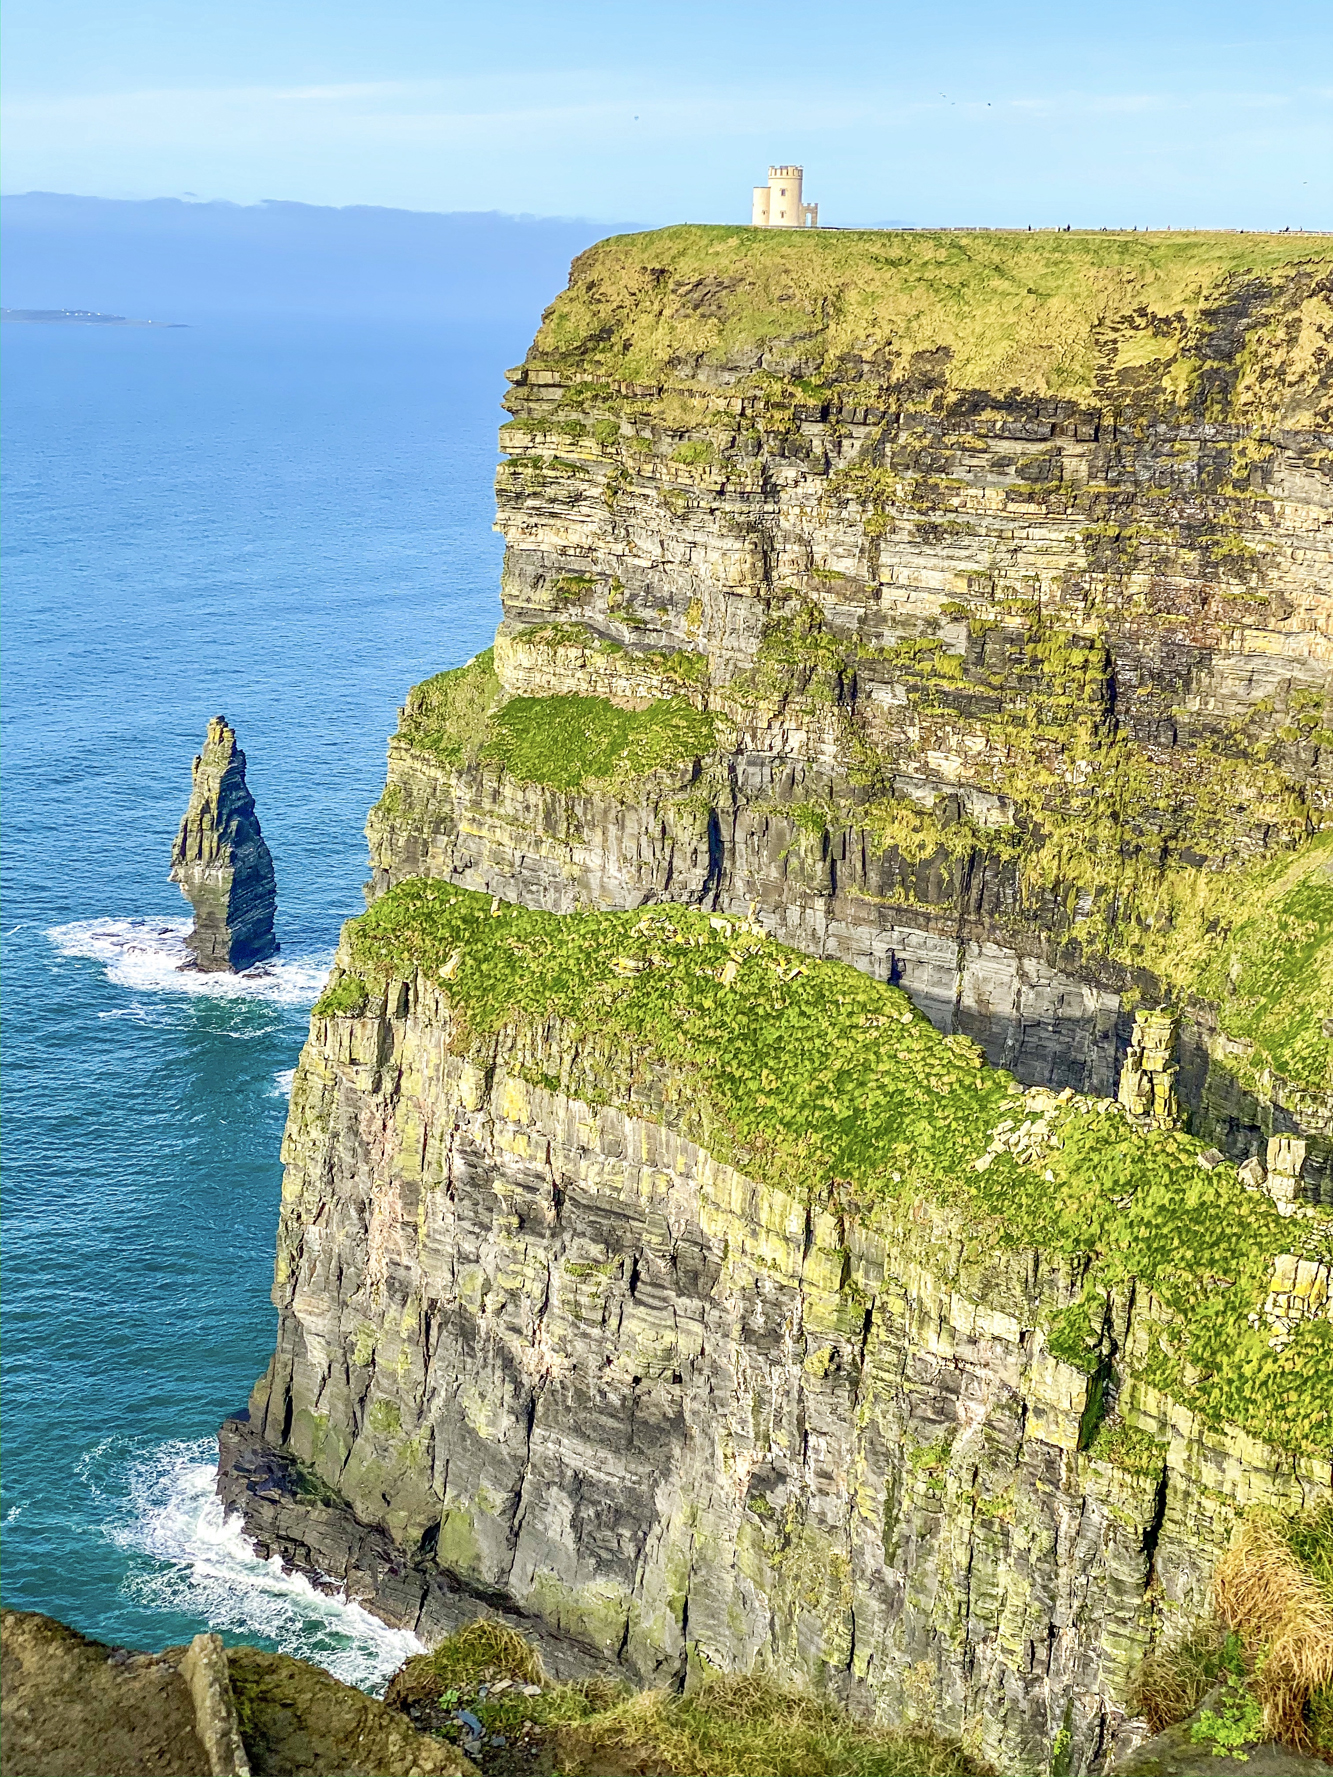 Where to eat, play and stay in Ireland with the help of our Ireland Travel Guide! Full of helpful tips and info on Cliffs of Moher, and more.